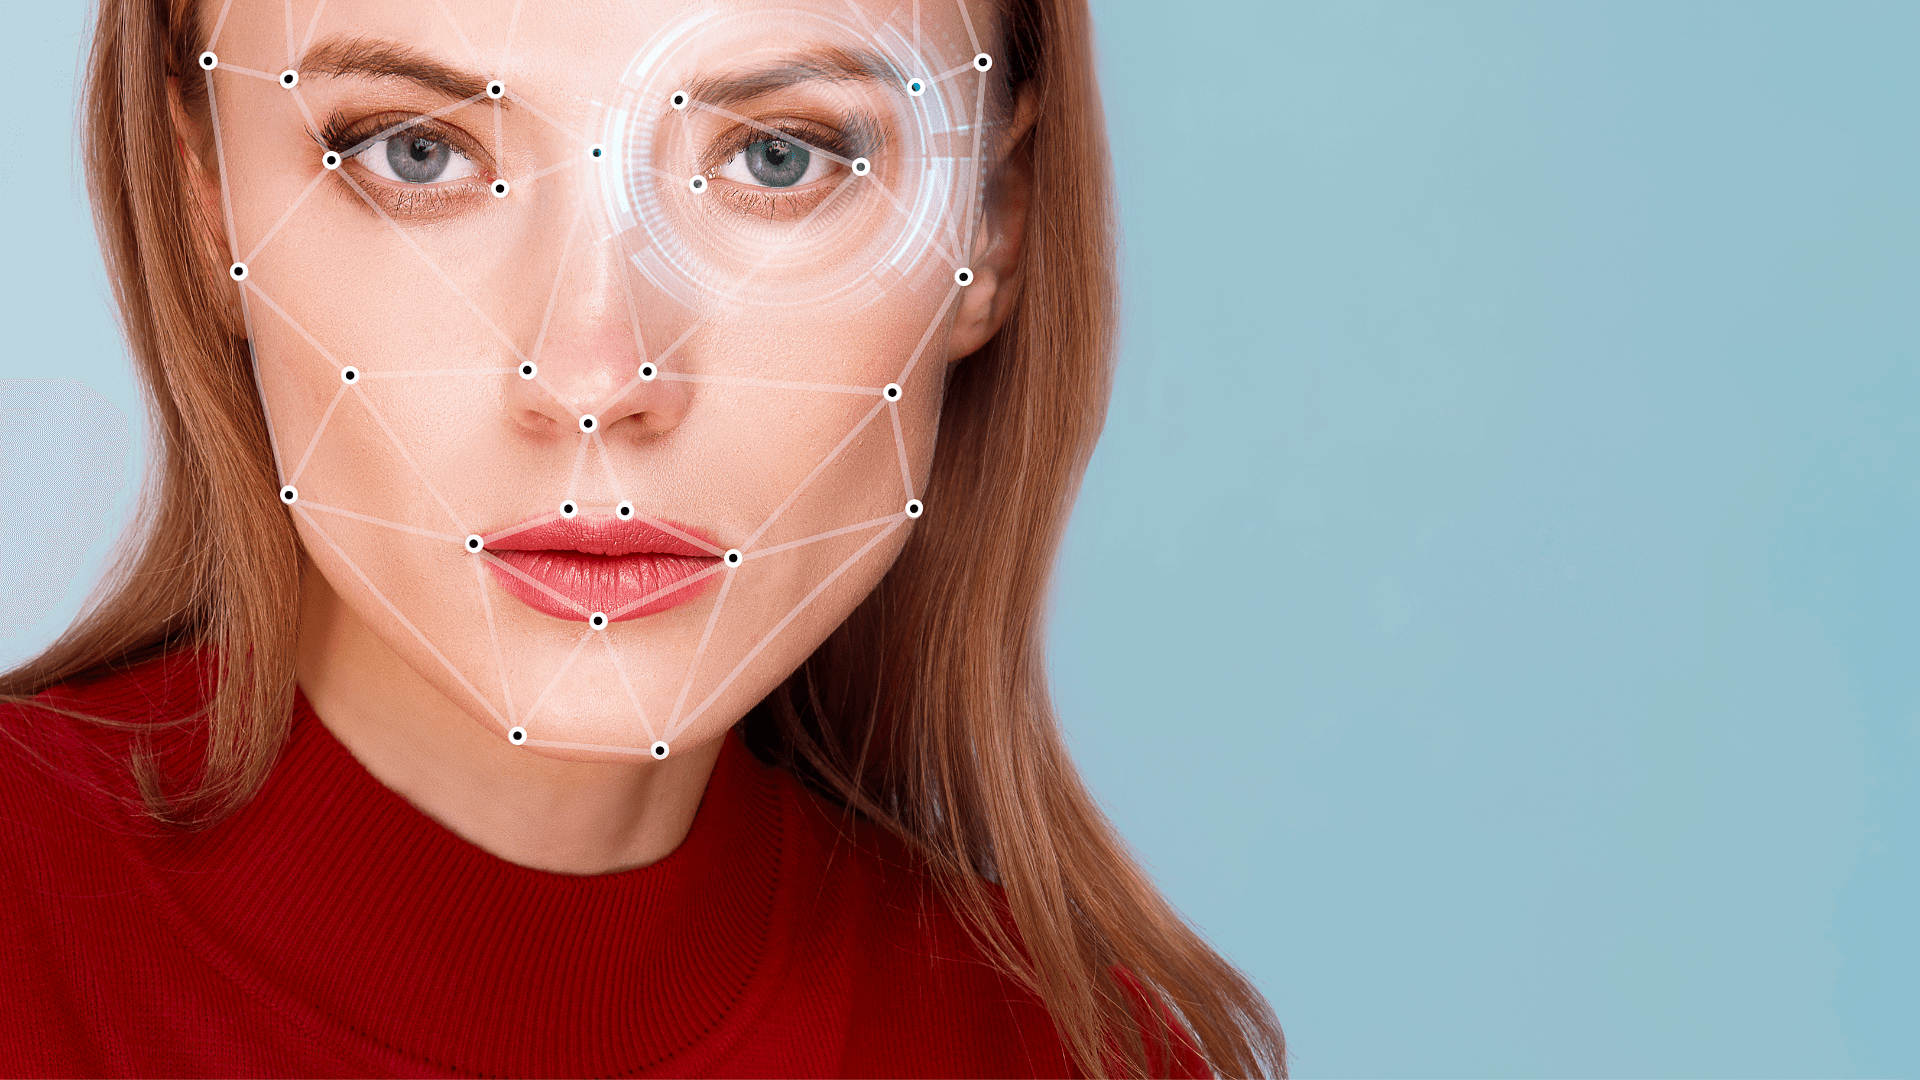 Mapping Facial Features Using Neural Networks